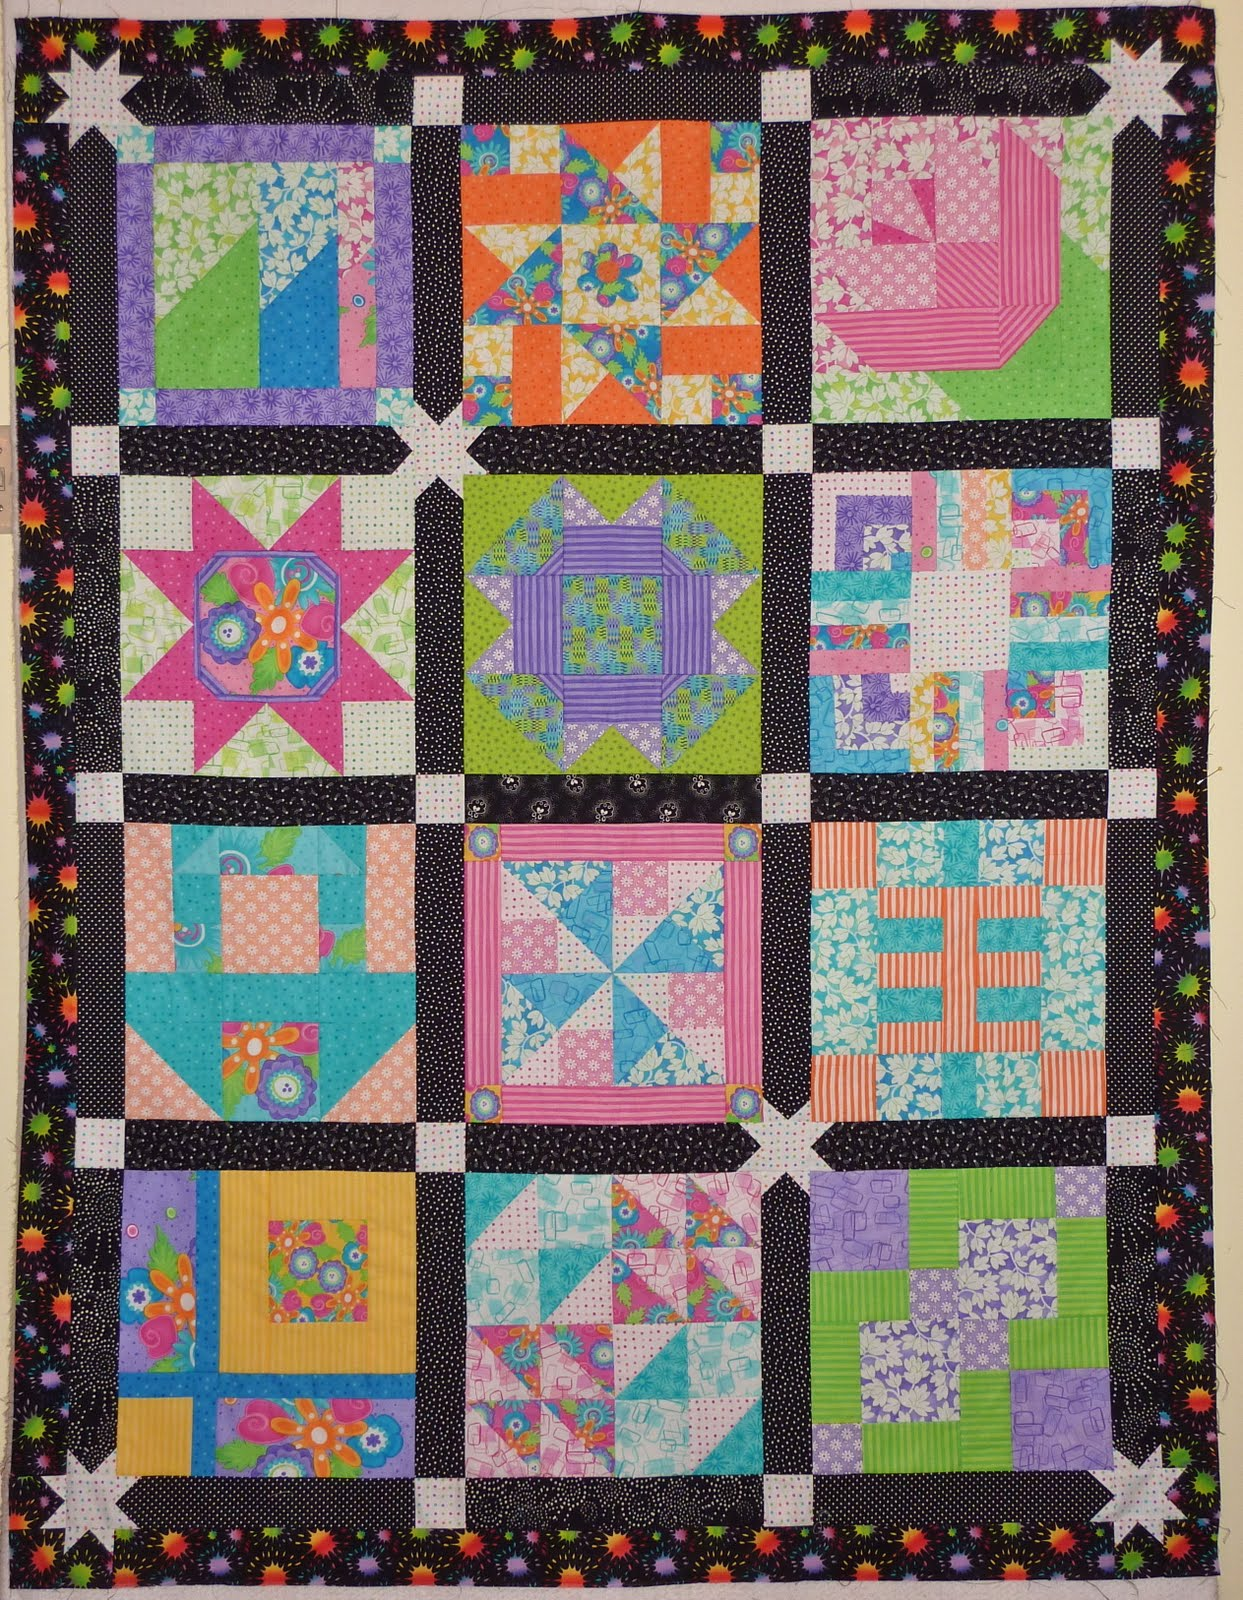 Layer Cake Quilt Moda : Kathy s Quilts: Finished Layer Cake Quilt & Draw Winner